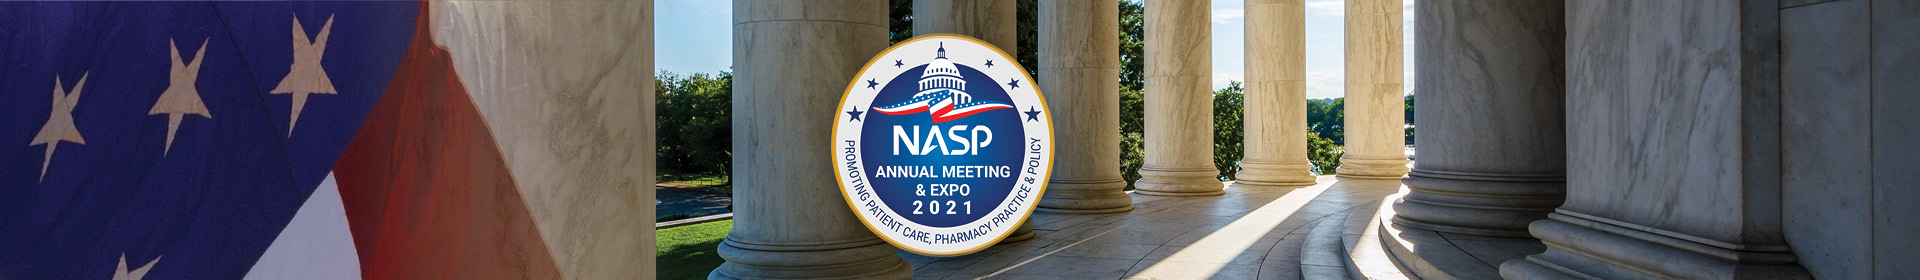 NASP 2021 Annual Meeting & Expo Event Banner